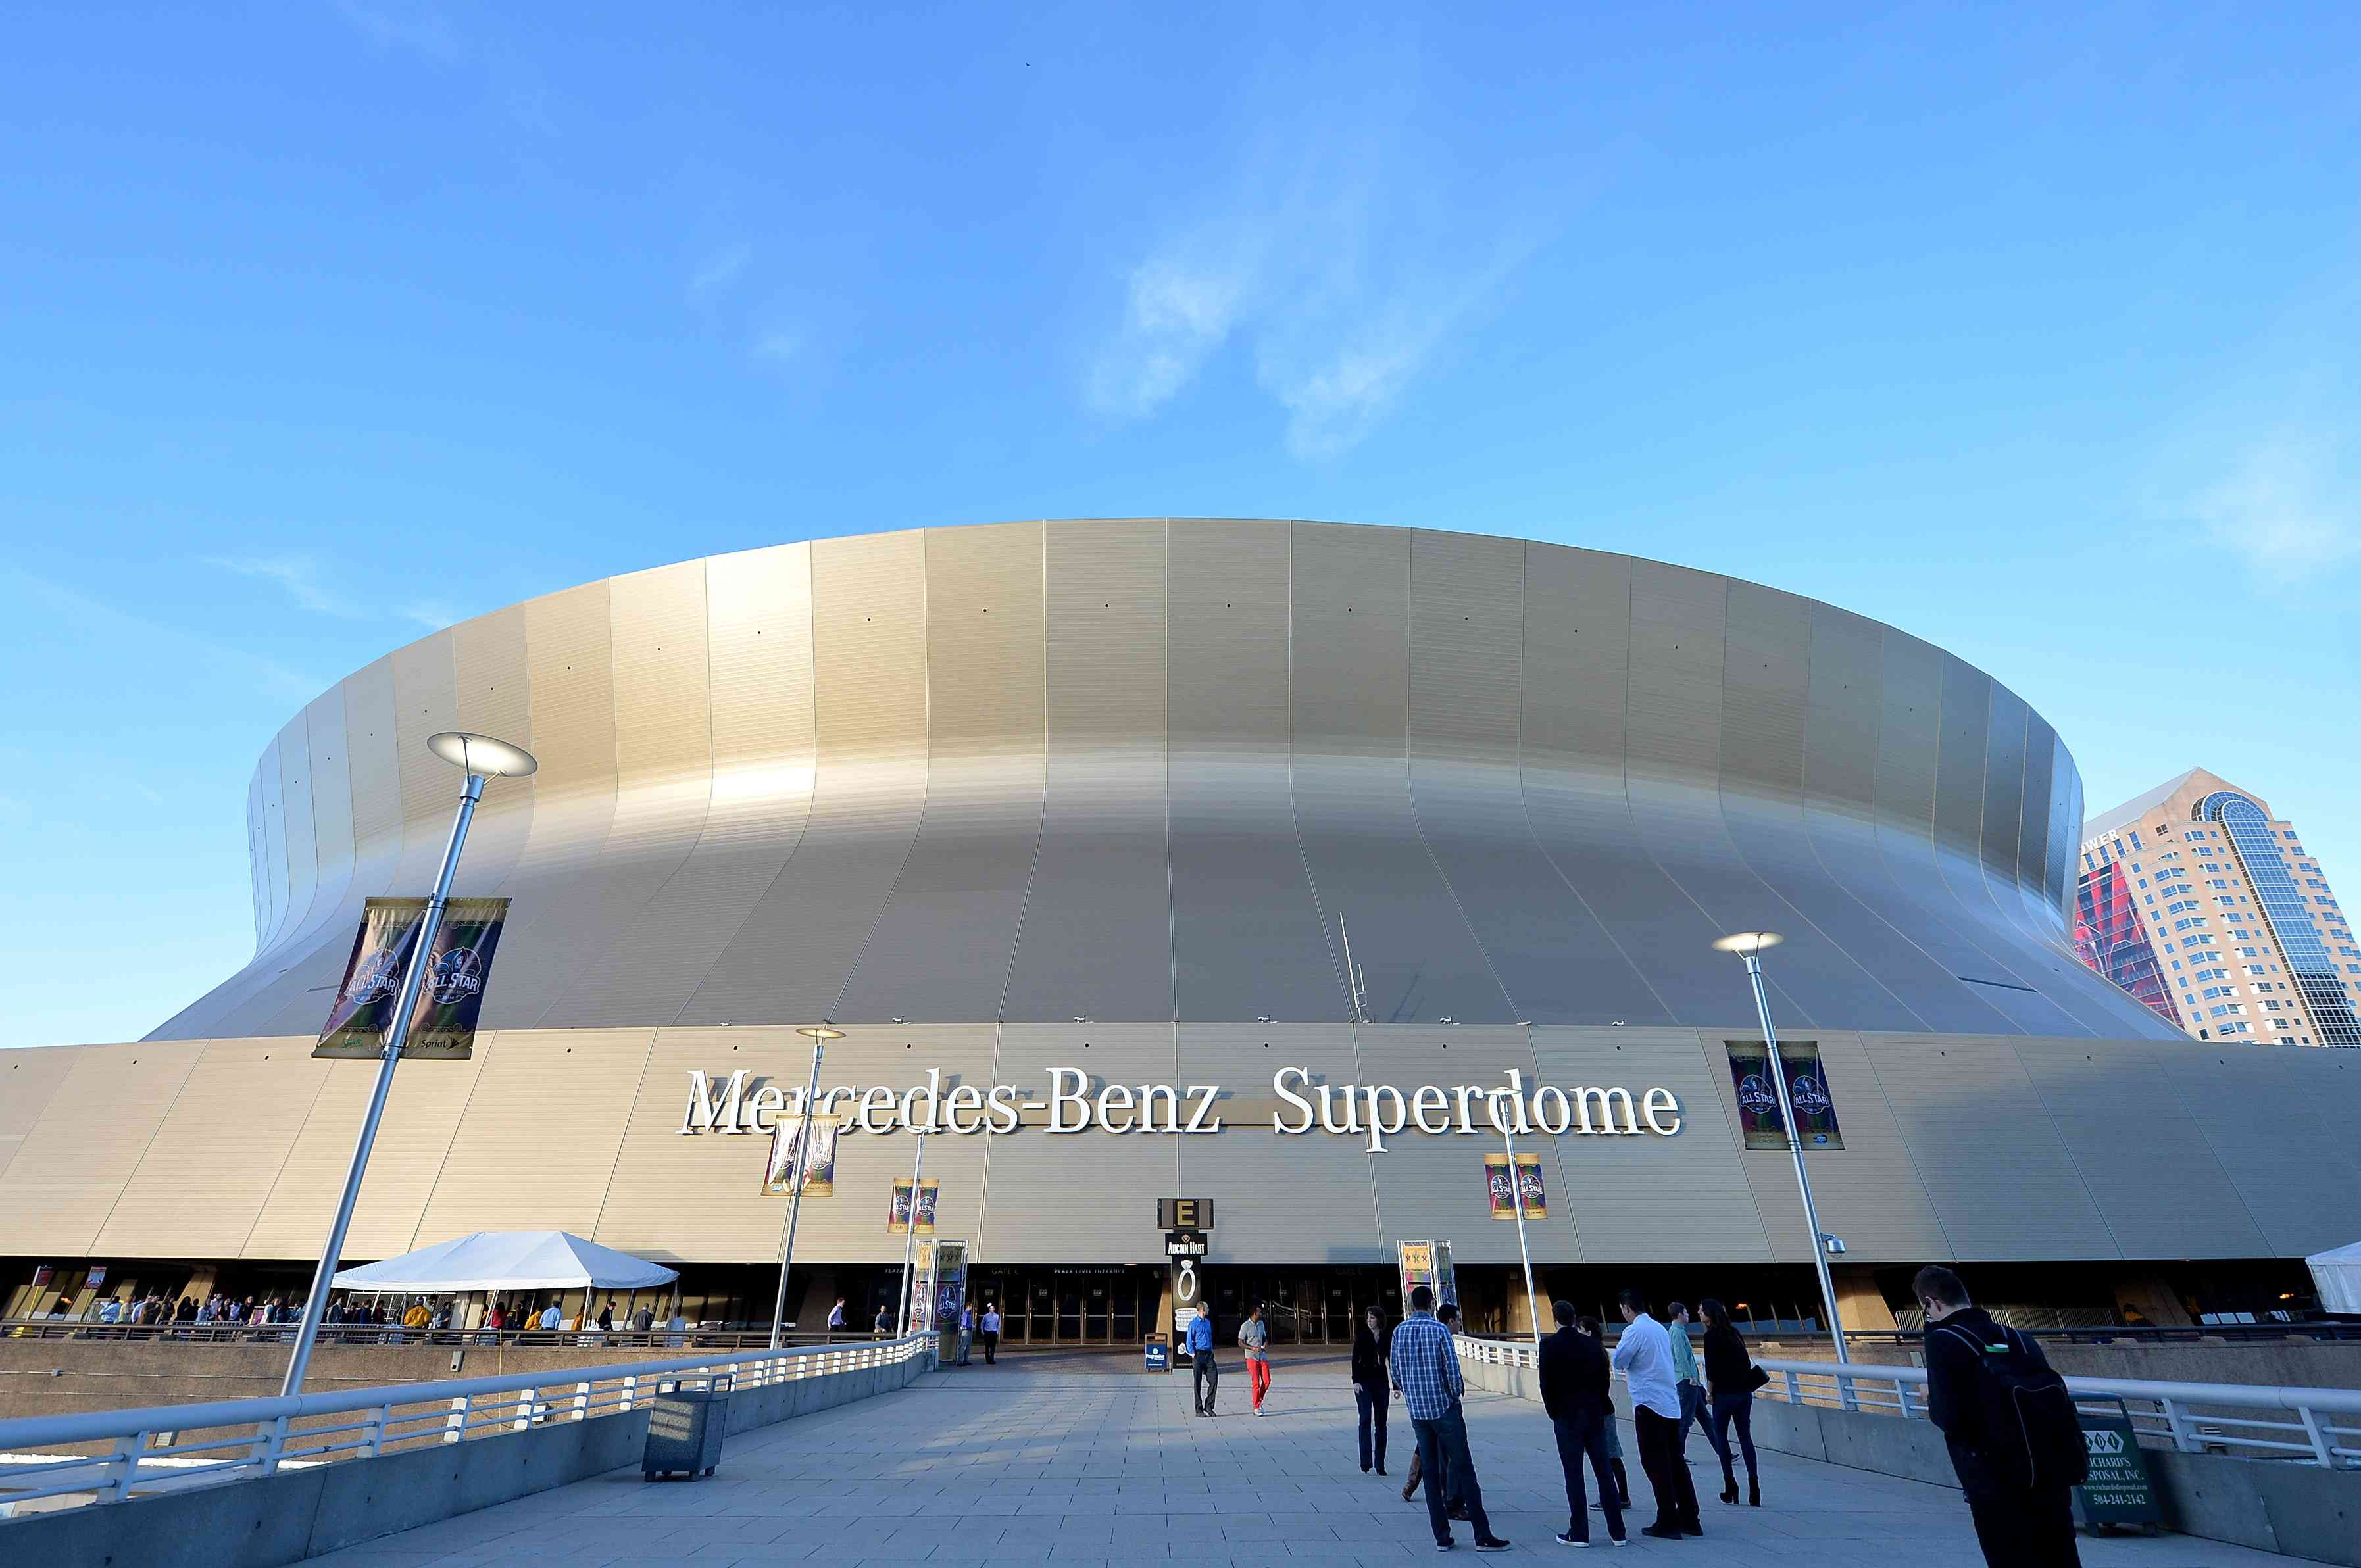 Mercedes-Benz Superdome in February 2014 in New Orleans, Louisiana